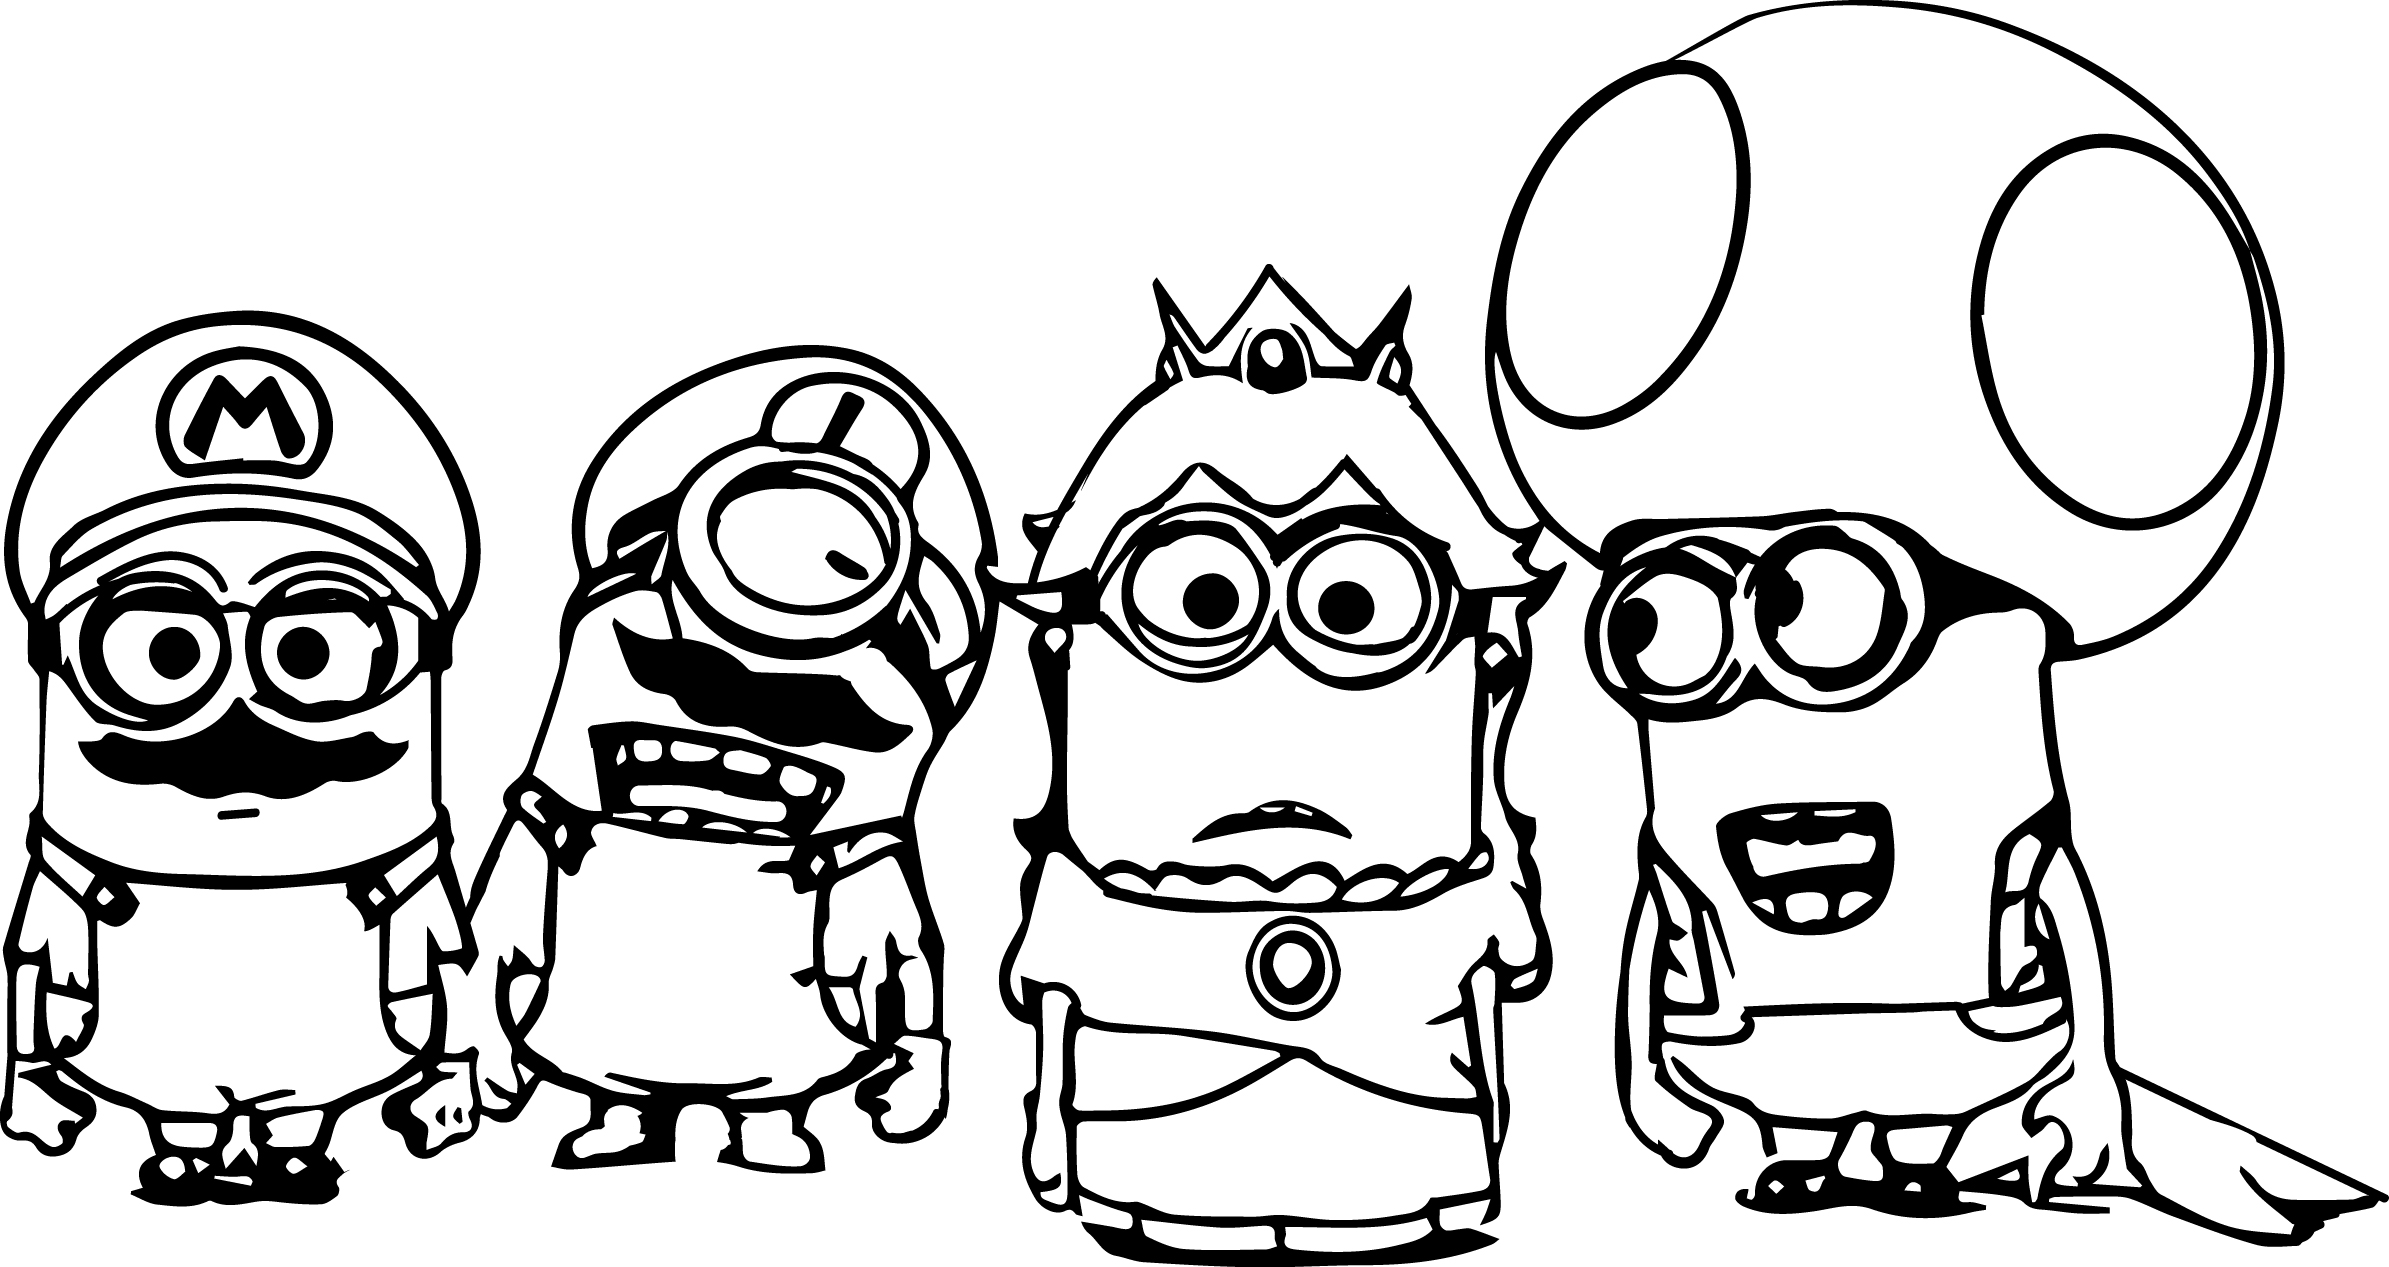 Minion Coloring Pages Best Coloring Pages For Kids Colouring Pages